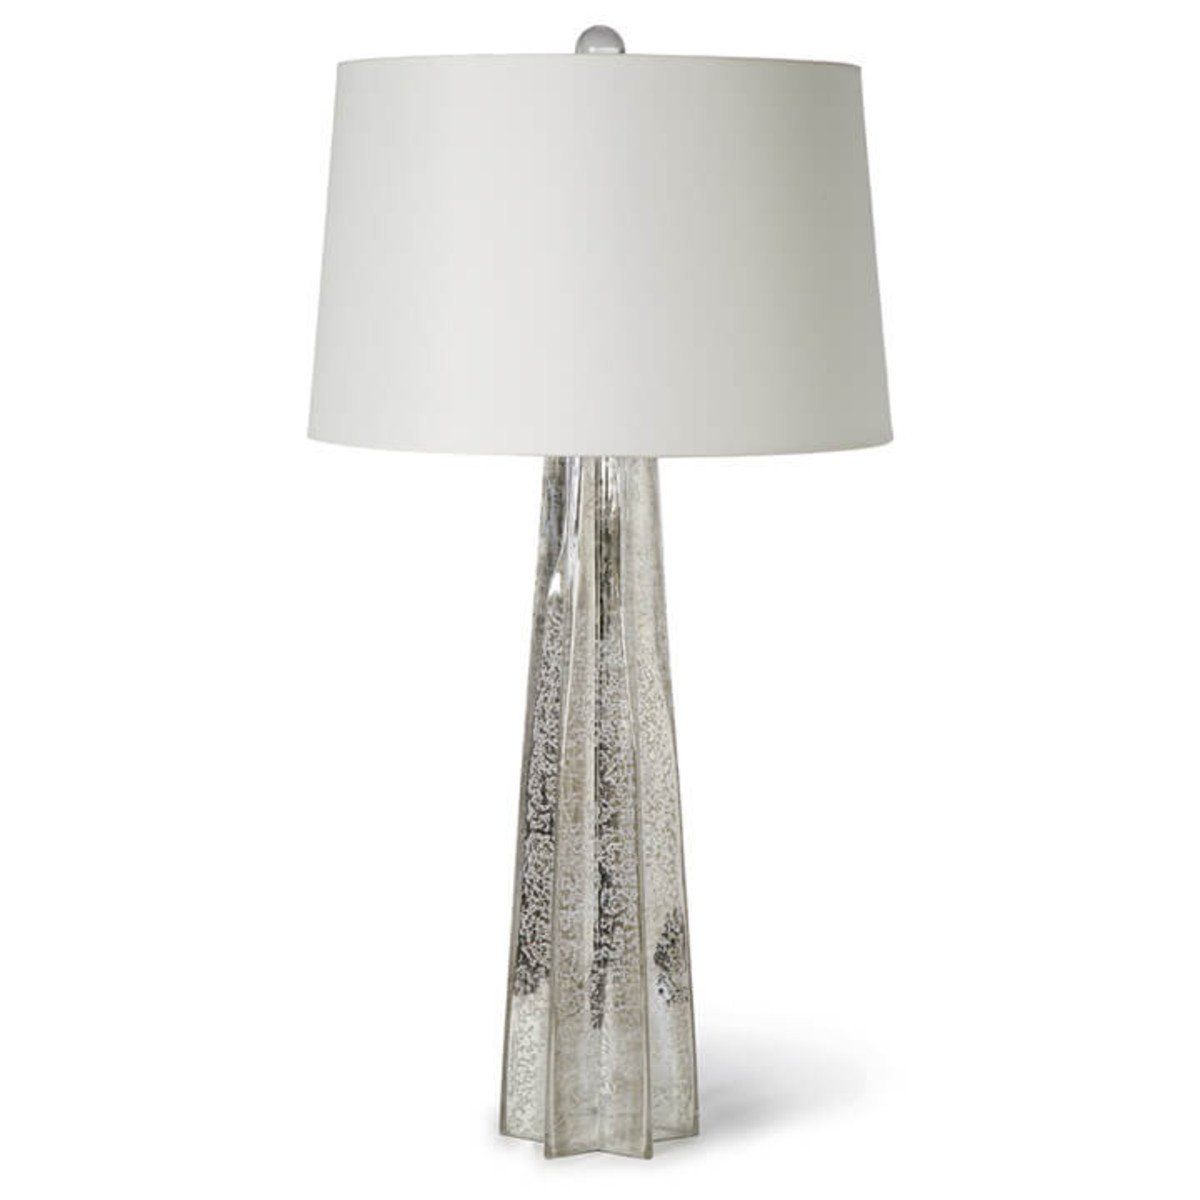 rectangle lamps lamp design andrew home products luxe shagreen regina ceramic